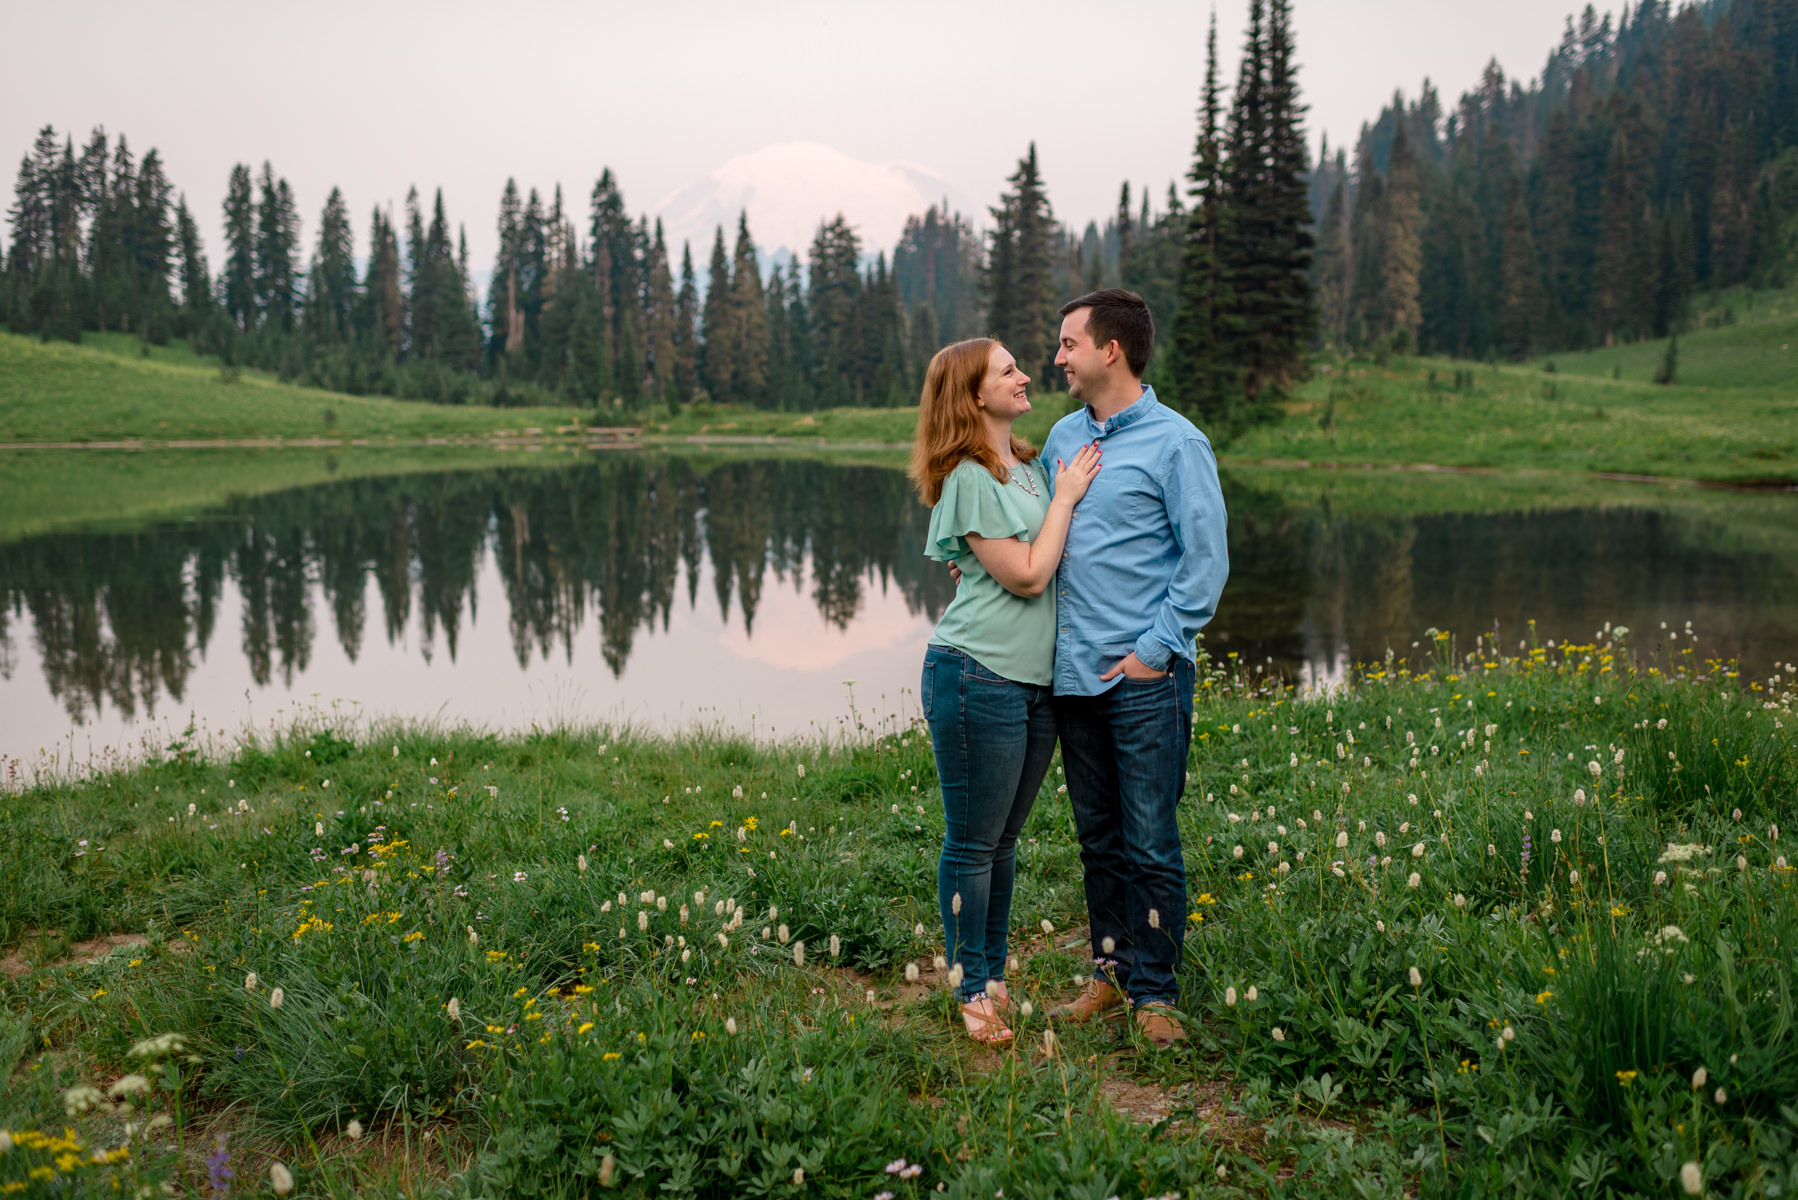 Andrew Tat - Documentary Wedding Photography - Tipsoo Lake - Mount Rainier National Park, Washington - Erin & Robert - 20.JPG